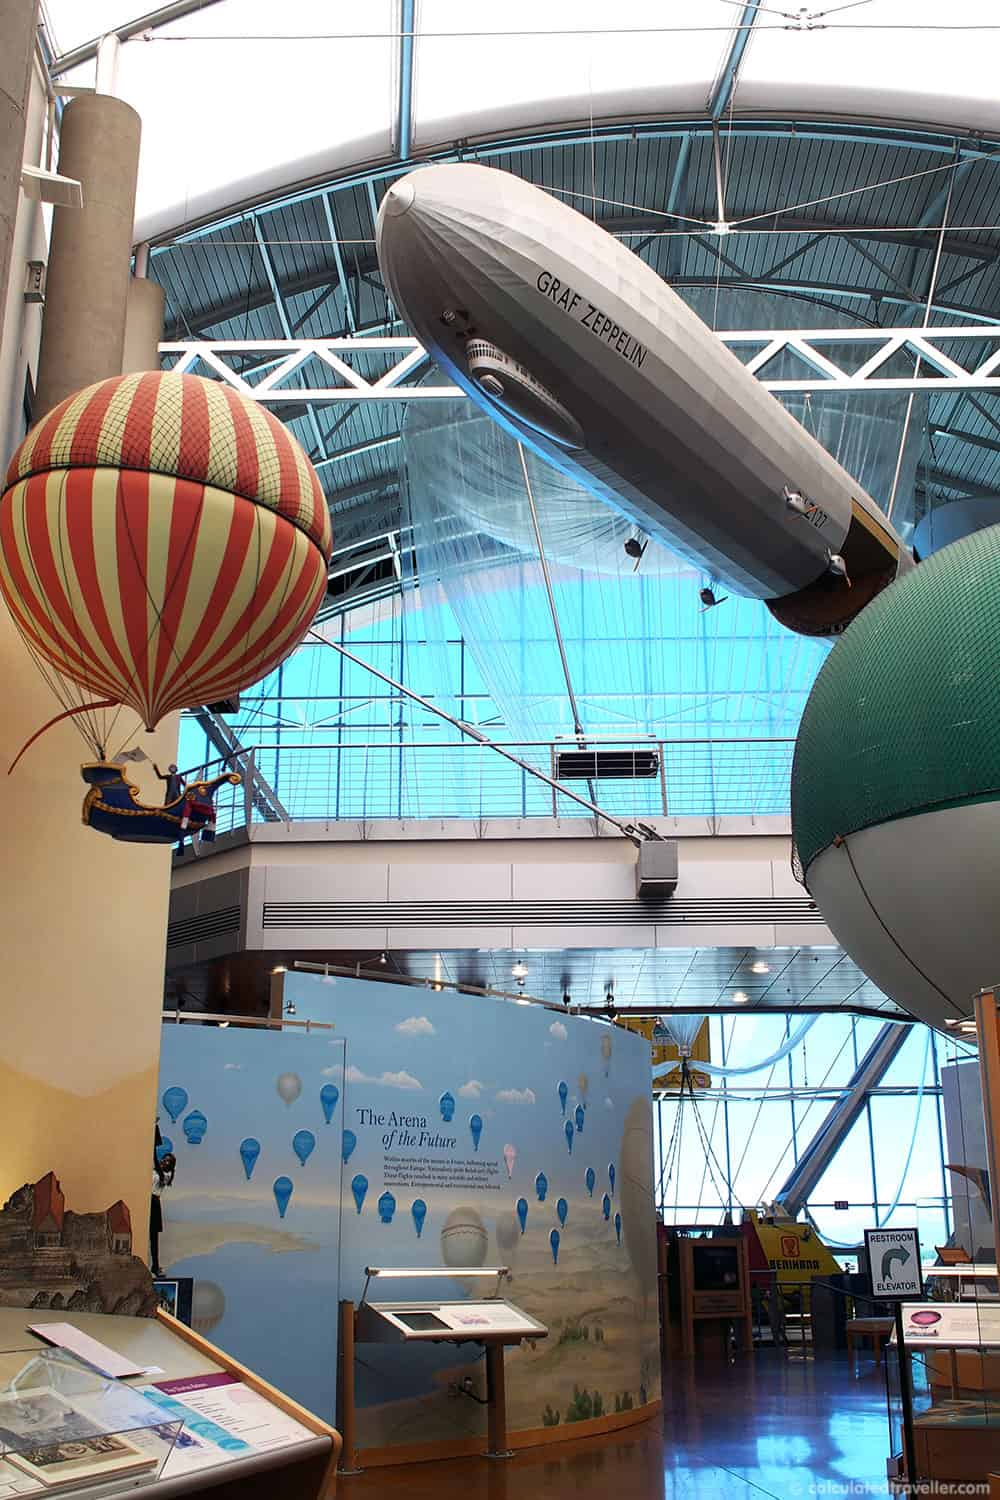 Aviation Museums Around the World - Anderson Abruzzo Albuquerque International Balloon Museum Albuquerque, New Mexico | #travel #museum #USA #NewMexico #Albuquerque